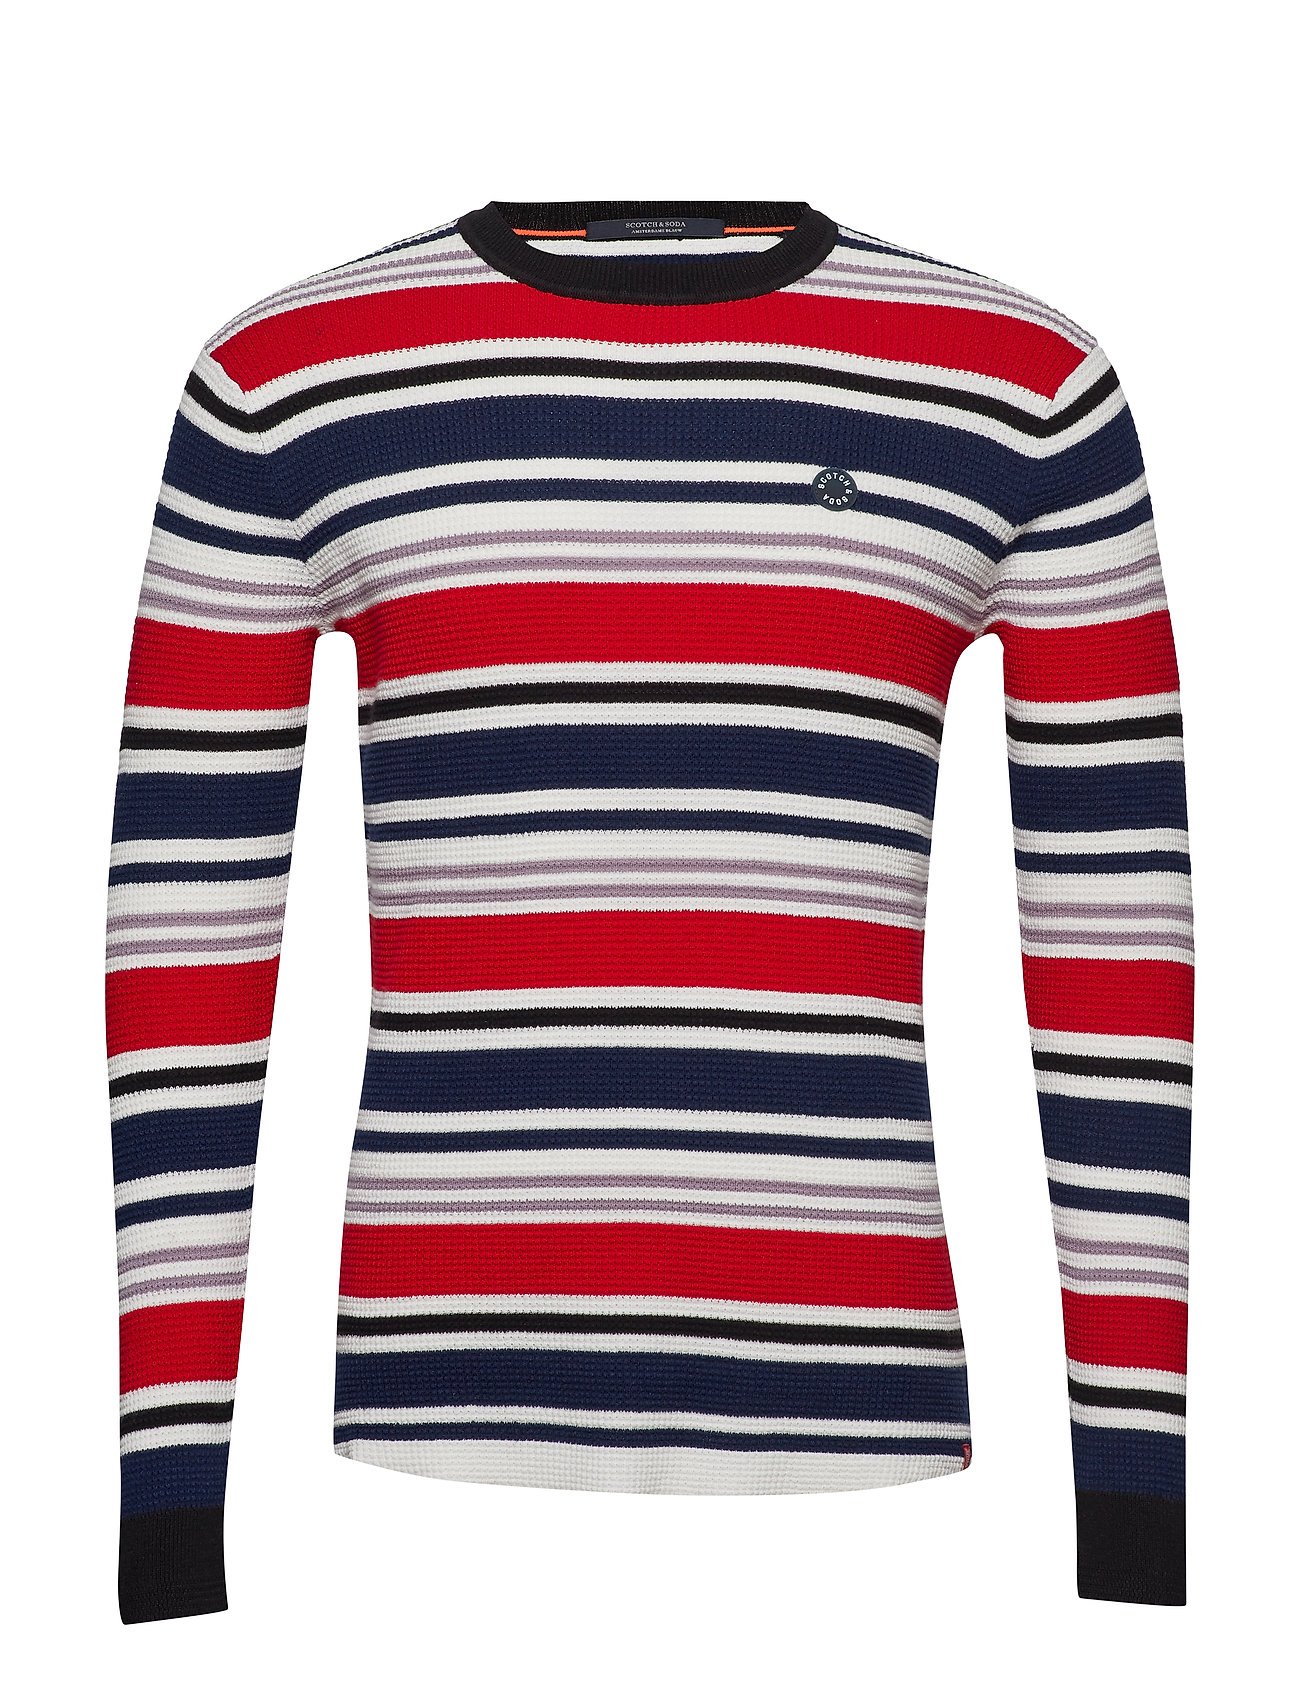 Scotch & Soda Longsleeve tee in 3D waffle with deck chair stripes - COMBO A